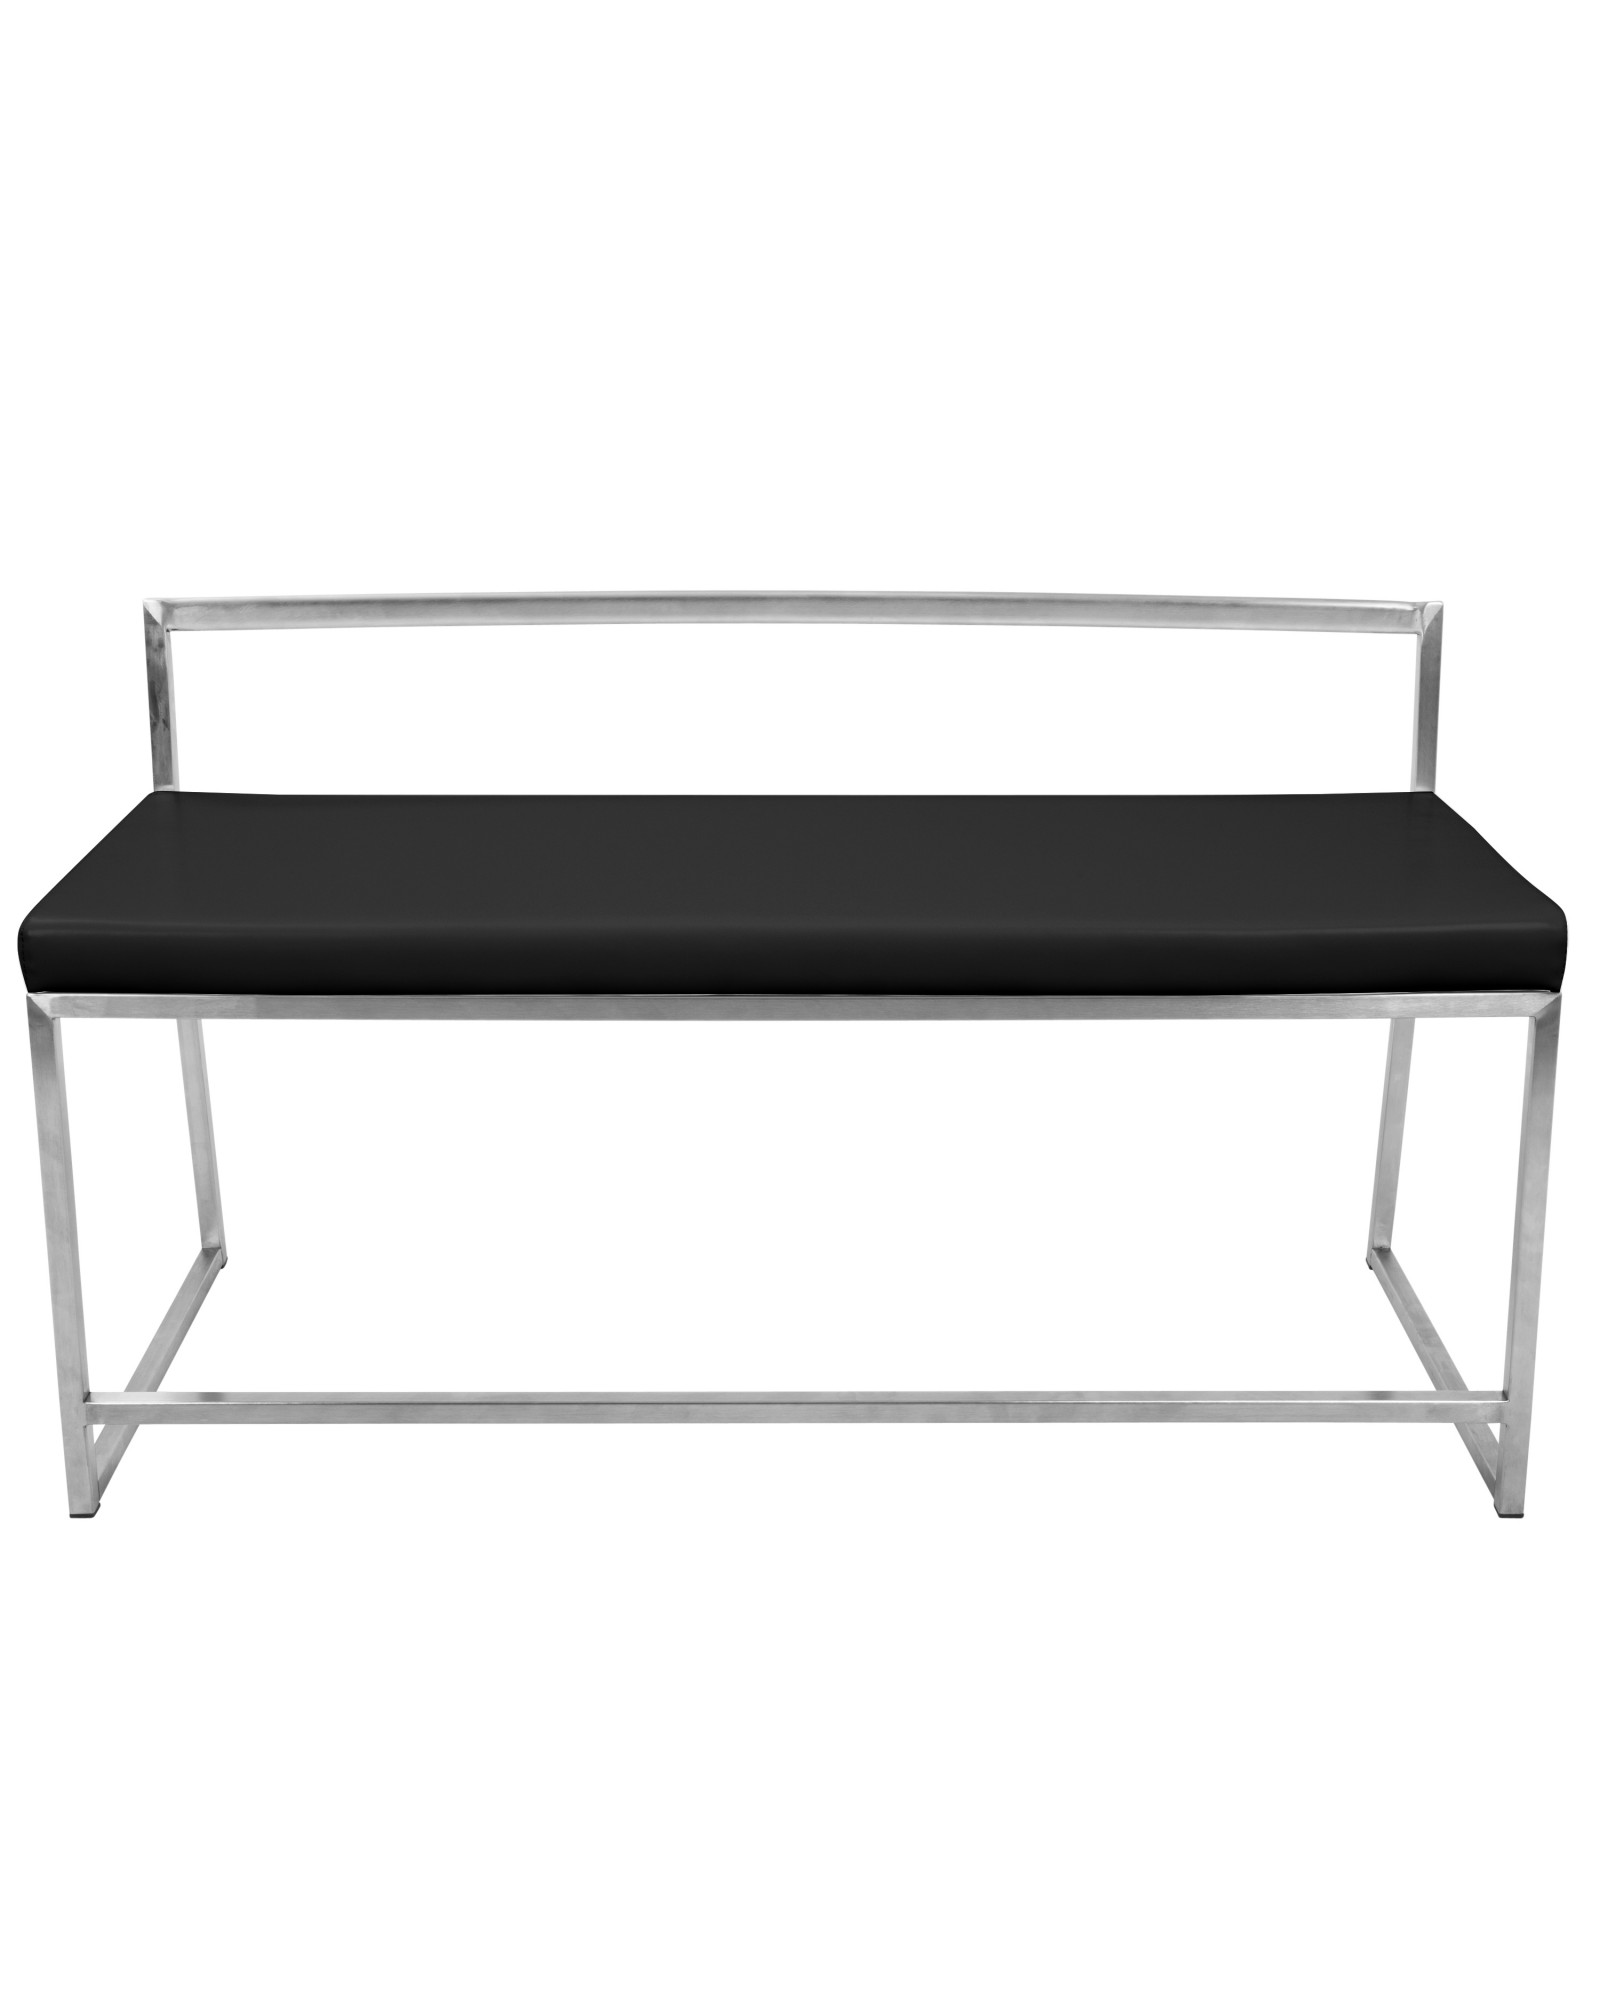 Fuji Contemporary Dining / Entryway Bench in Black Faux Leather